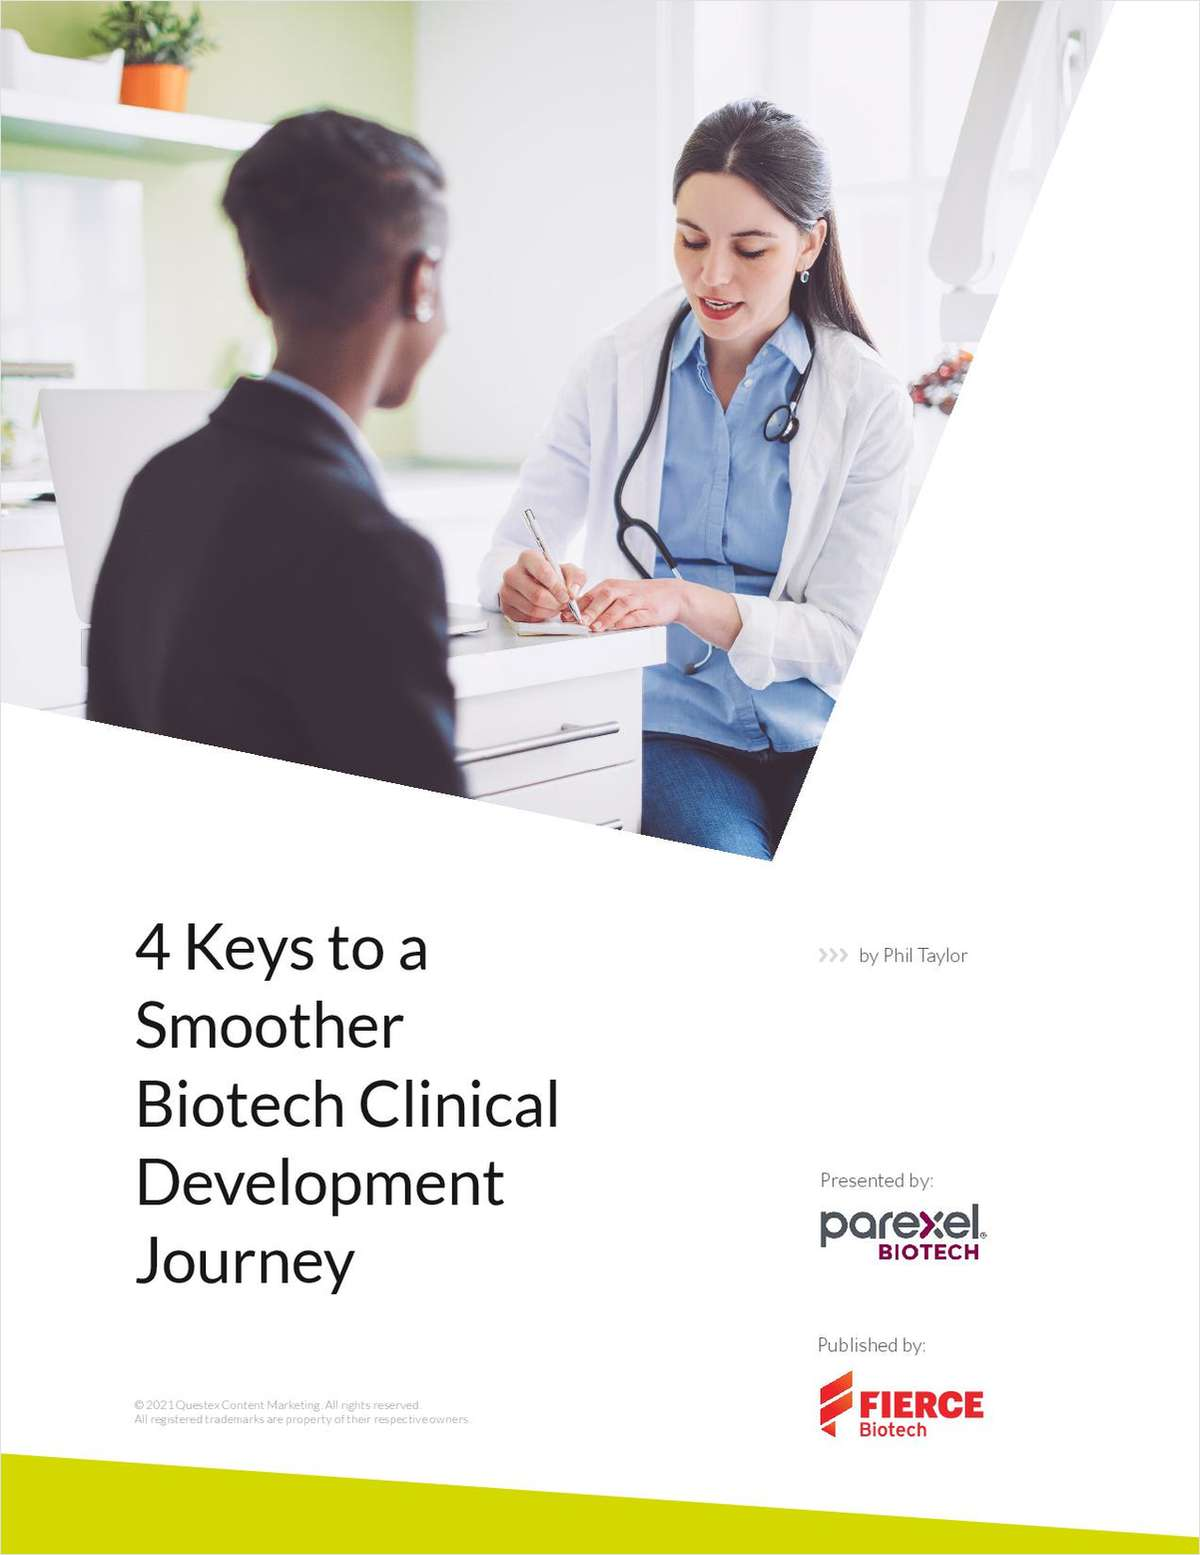 4 Keys to a Smoother Biotech Clinical Development Journey